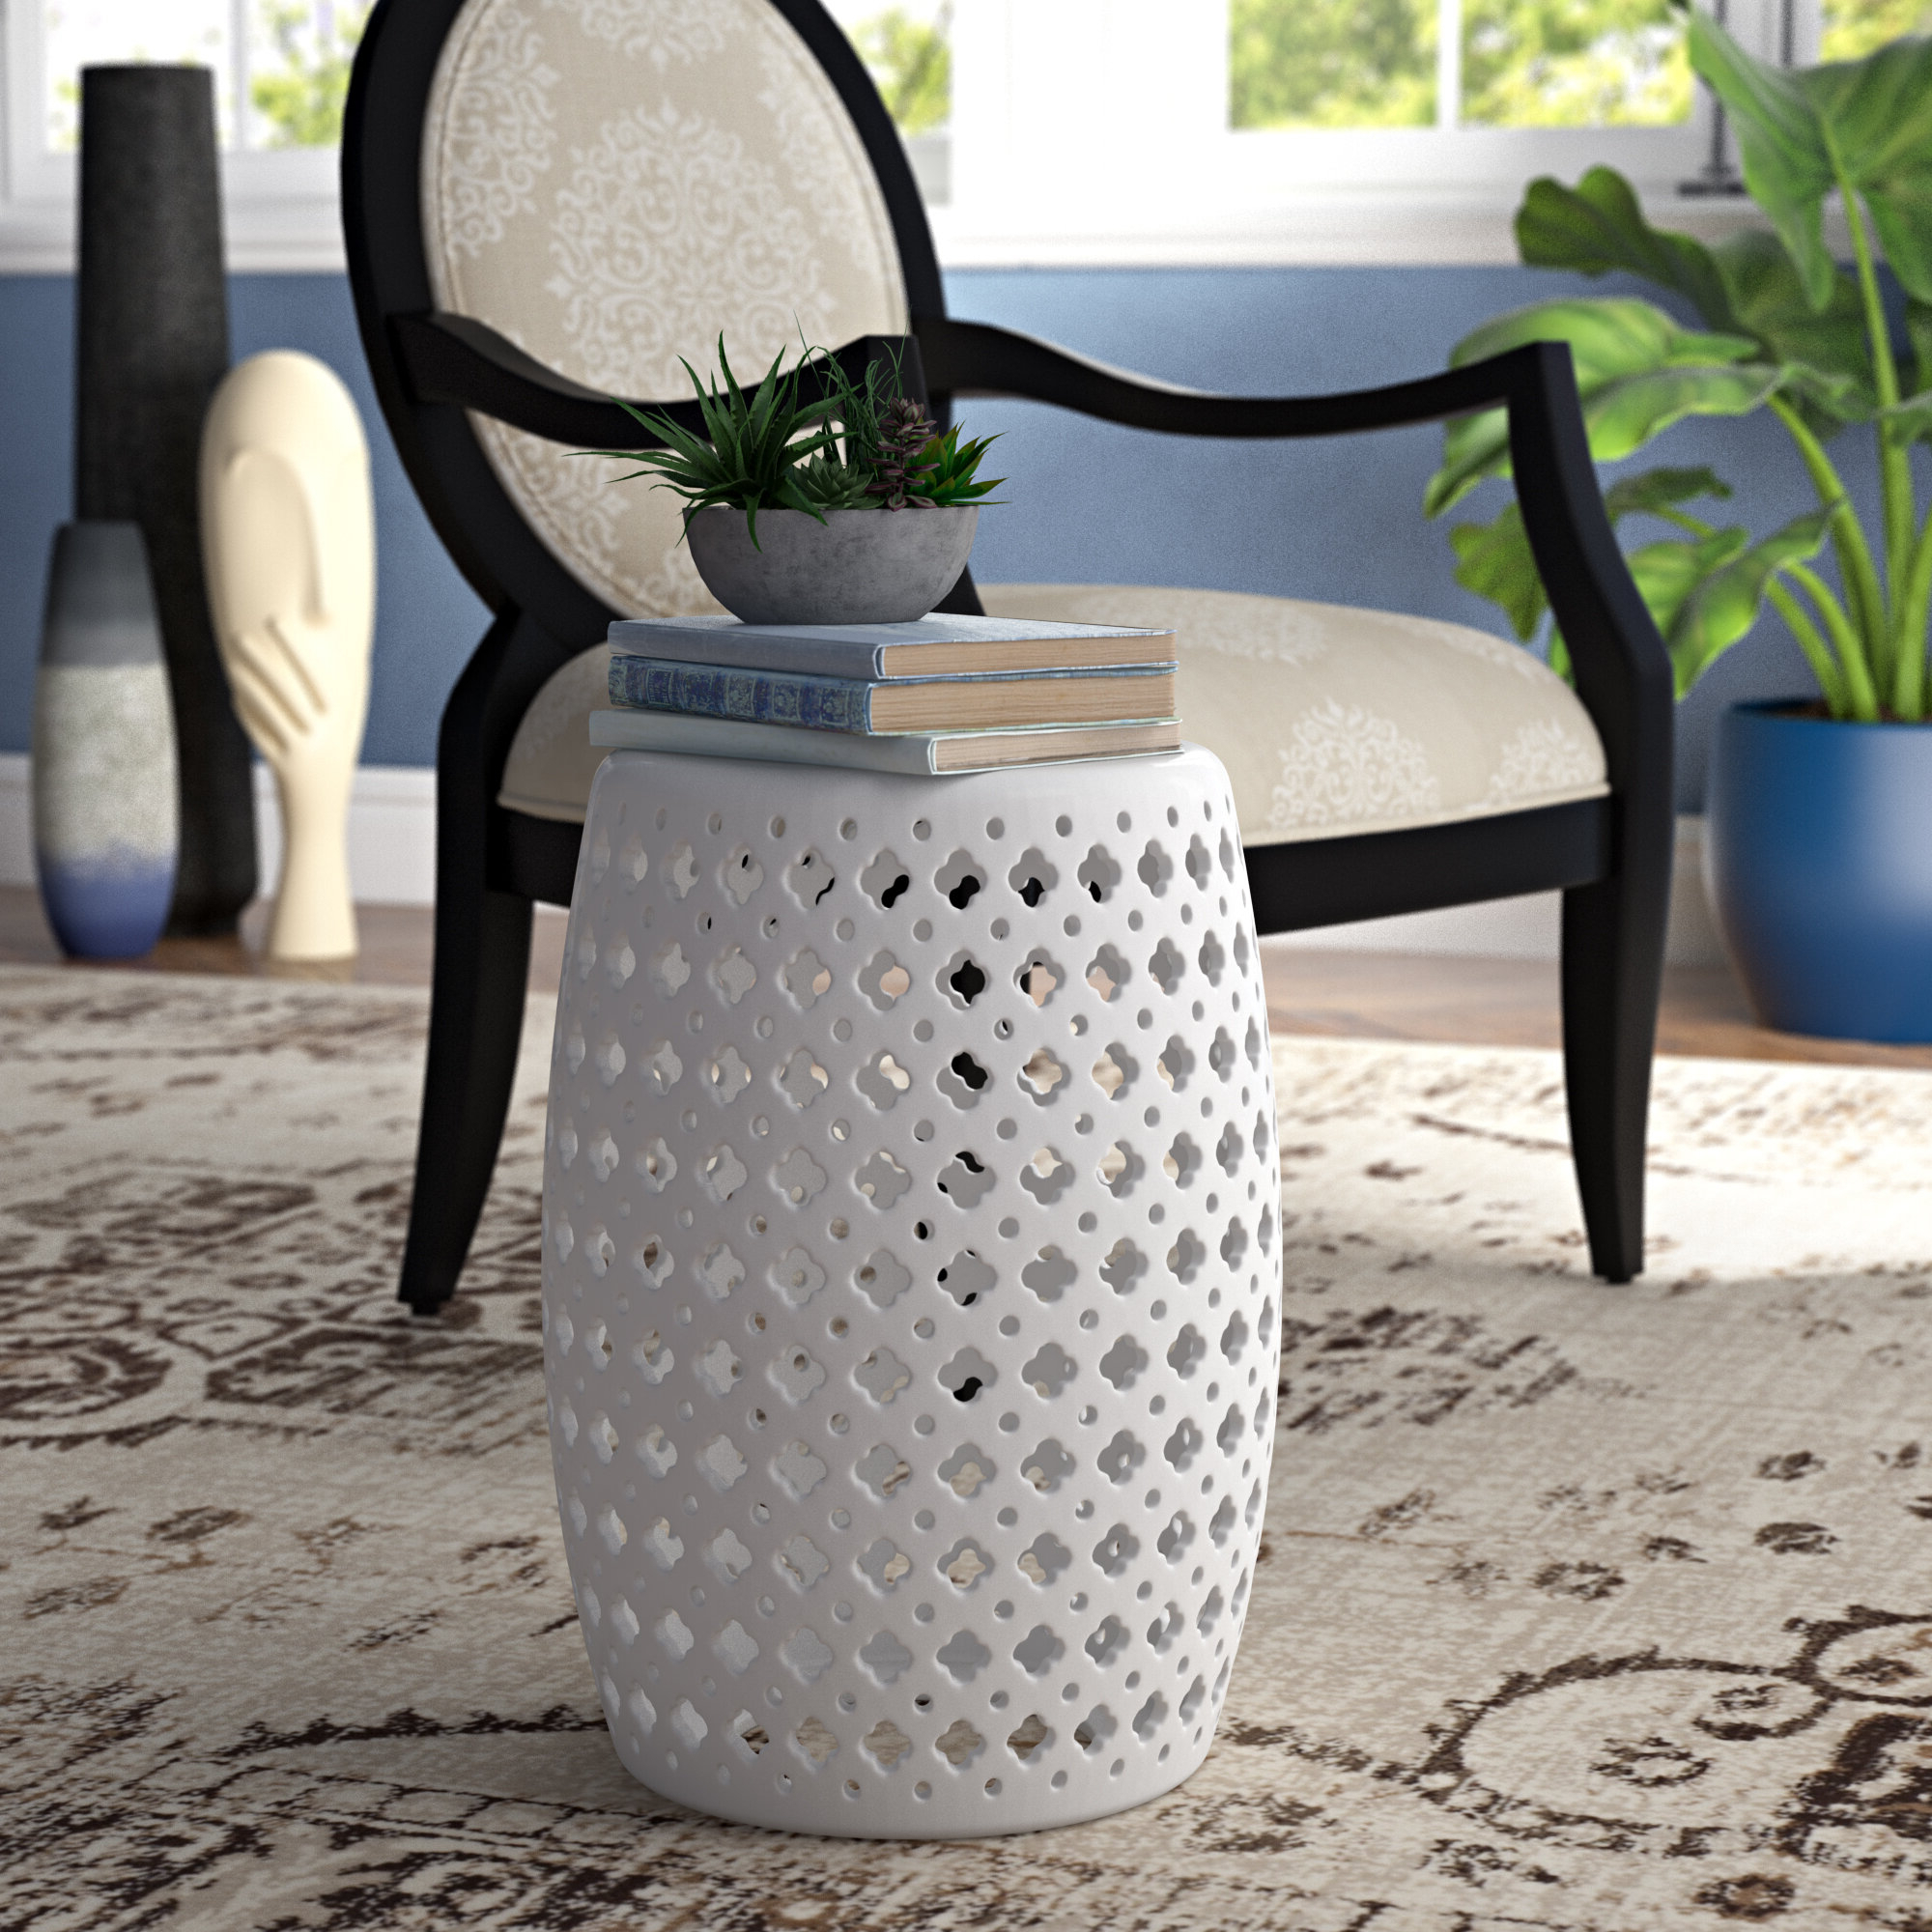 Canarsie Ceramic Garden Stools With Regard To Current Gisella Garden Stool (View 5 of 30)